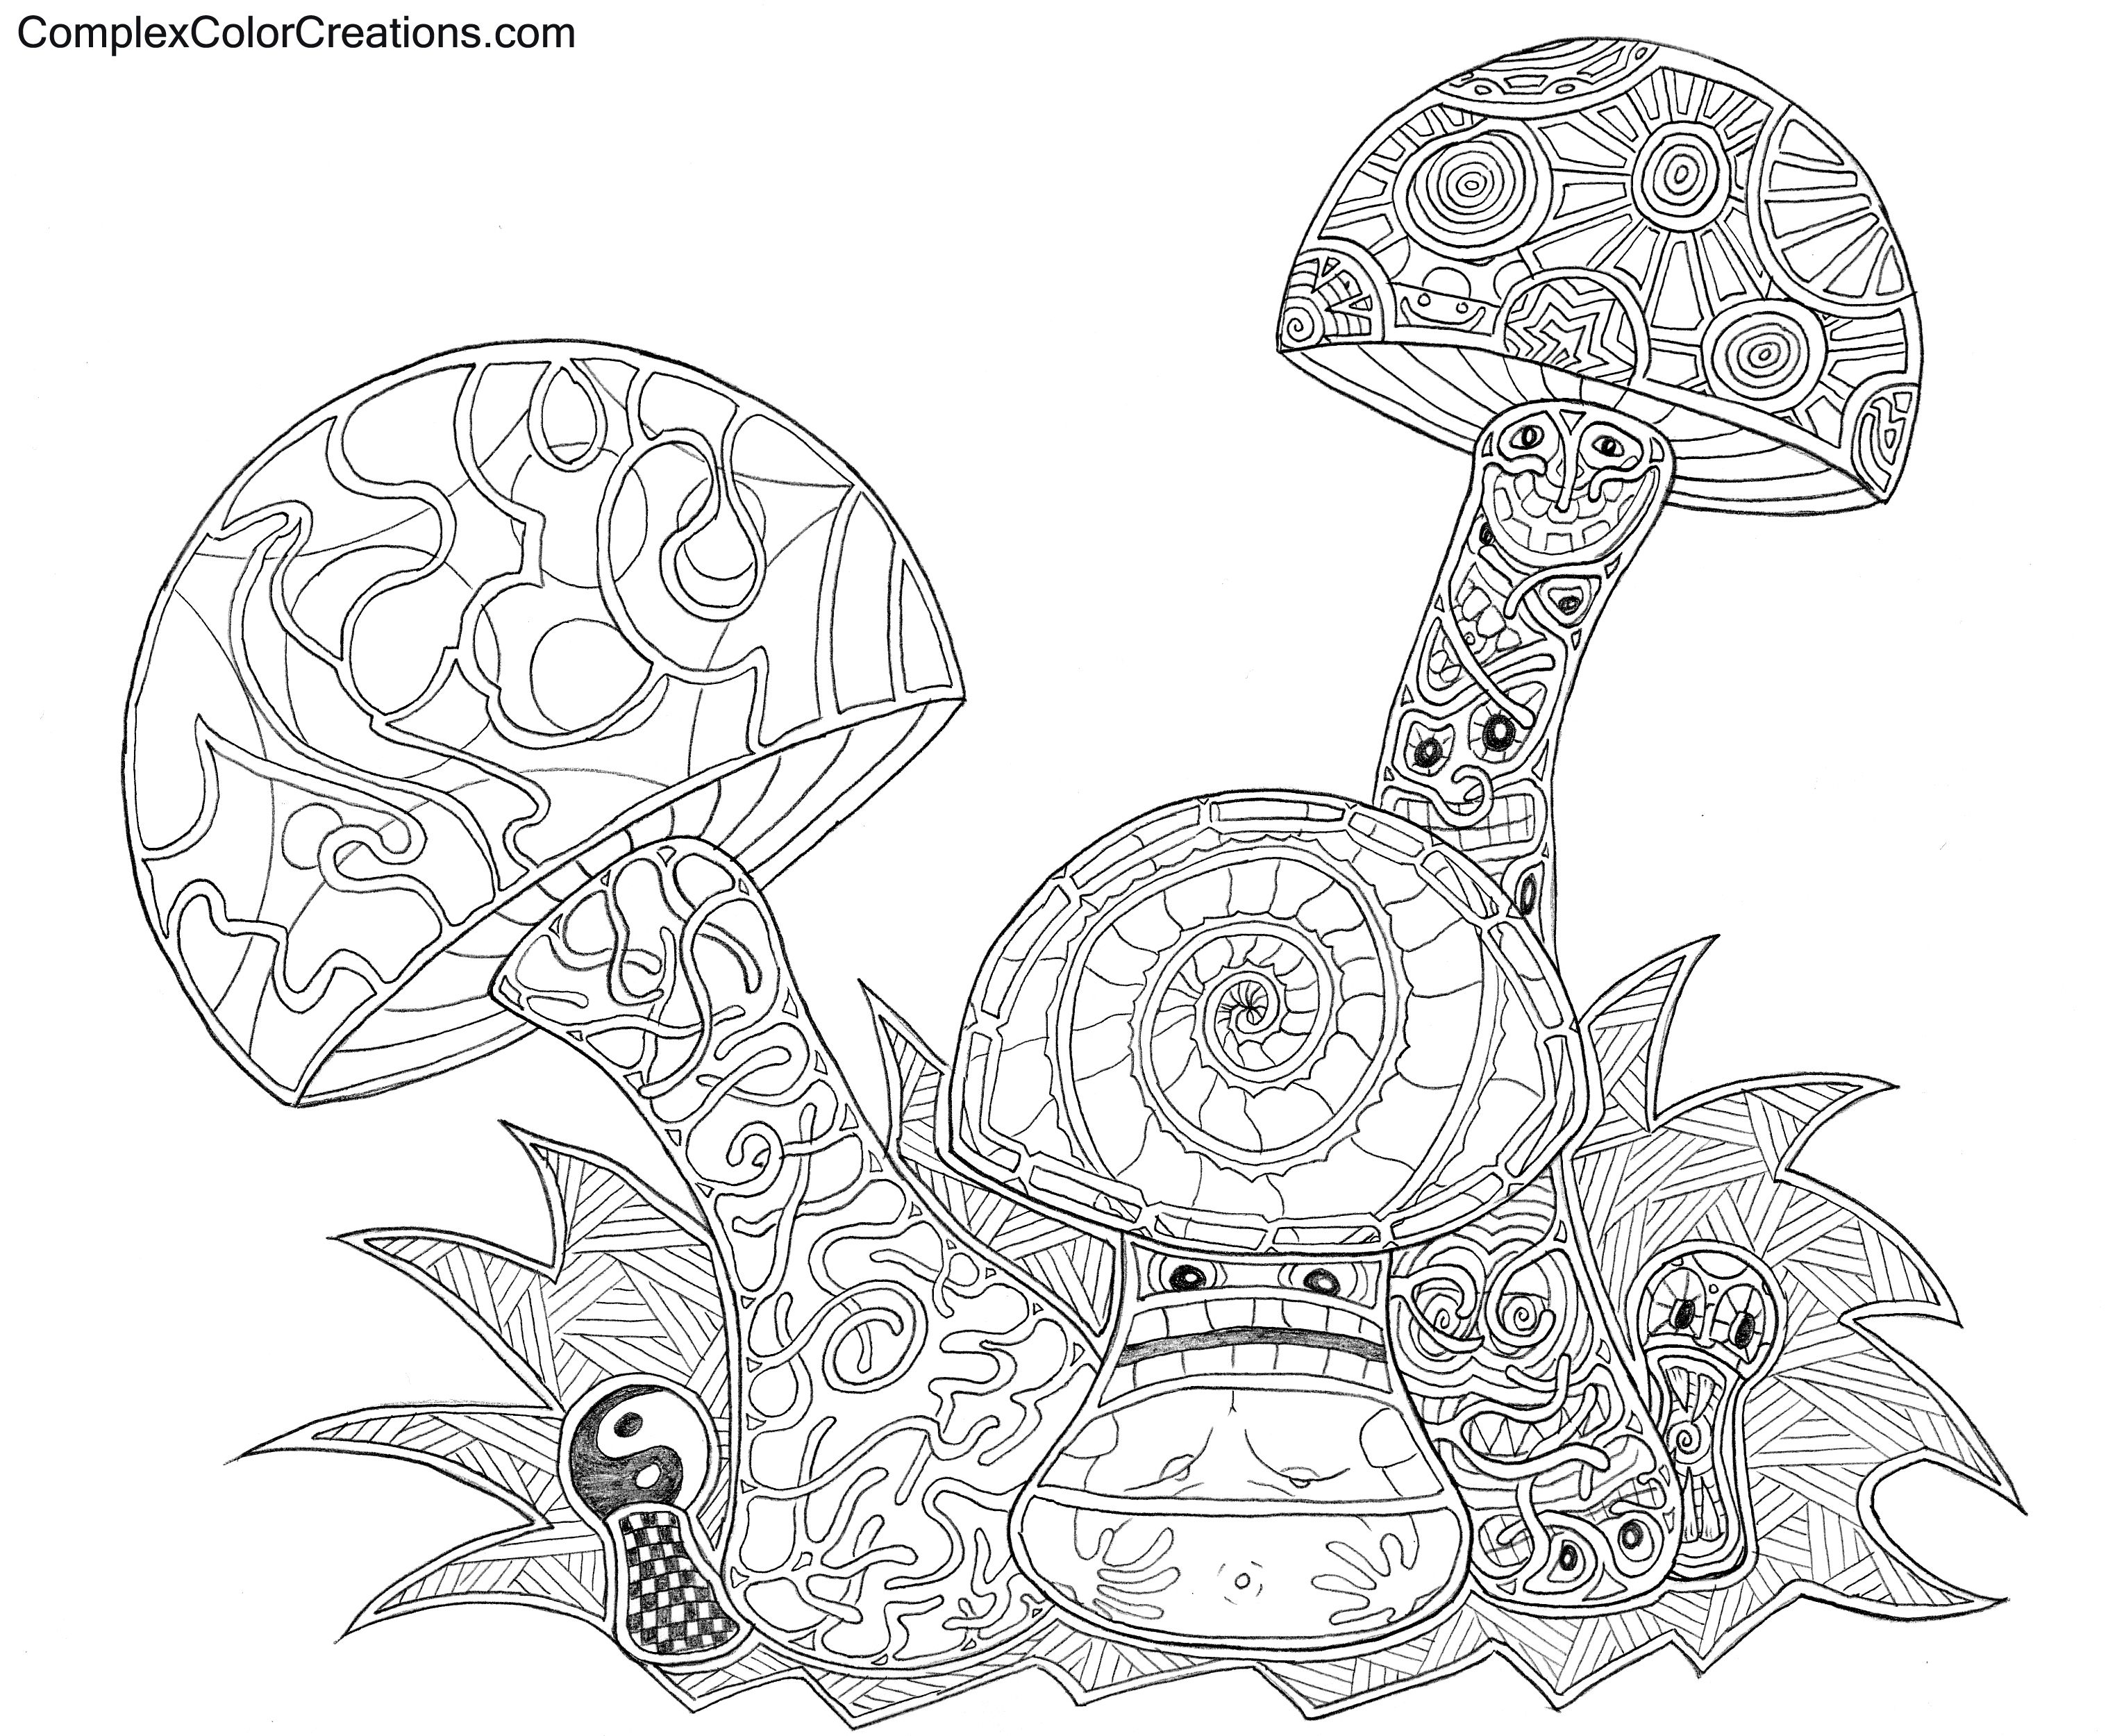 complex coloring pages - Complex Colouring Sheets